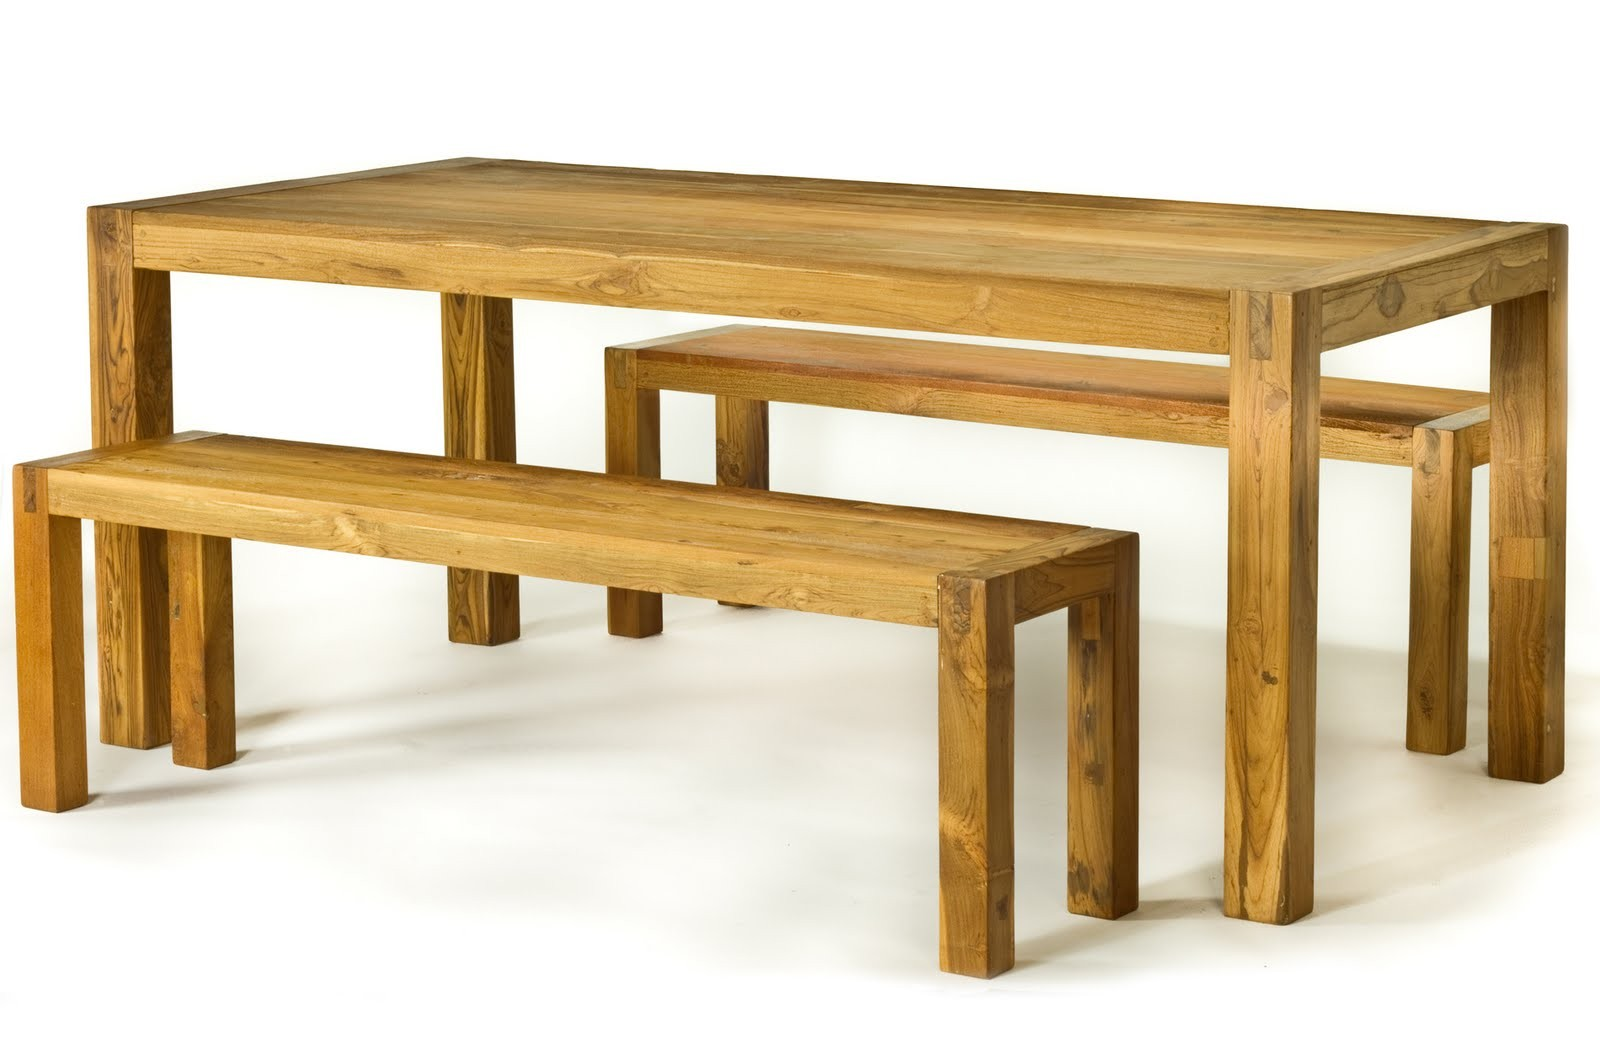 Spark s reclaimed teak wood dining table and benches set is the